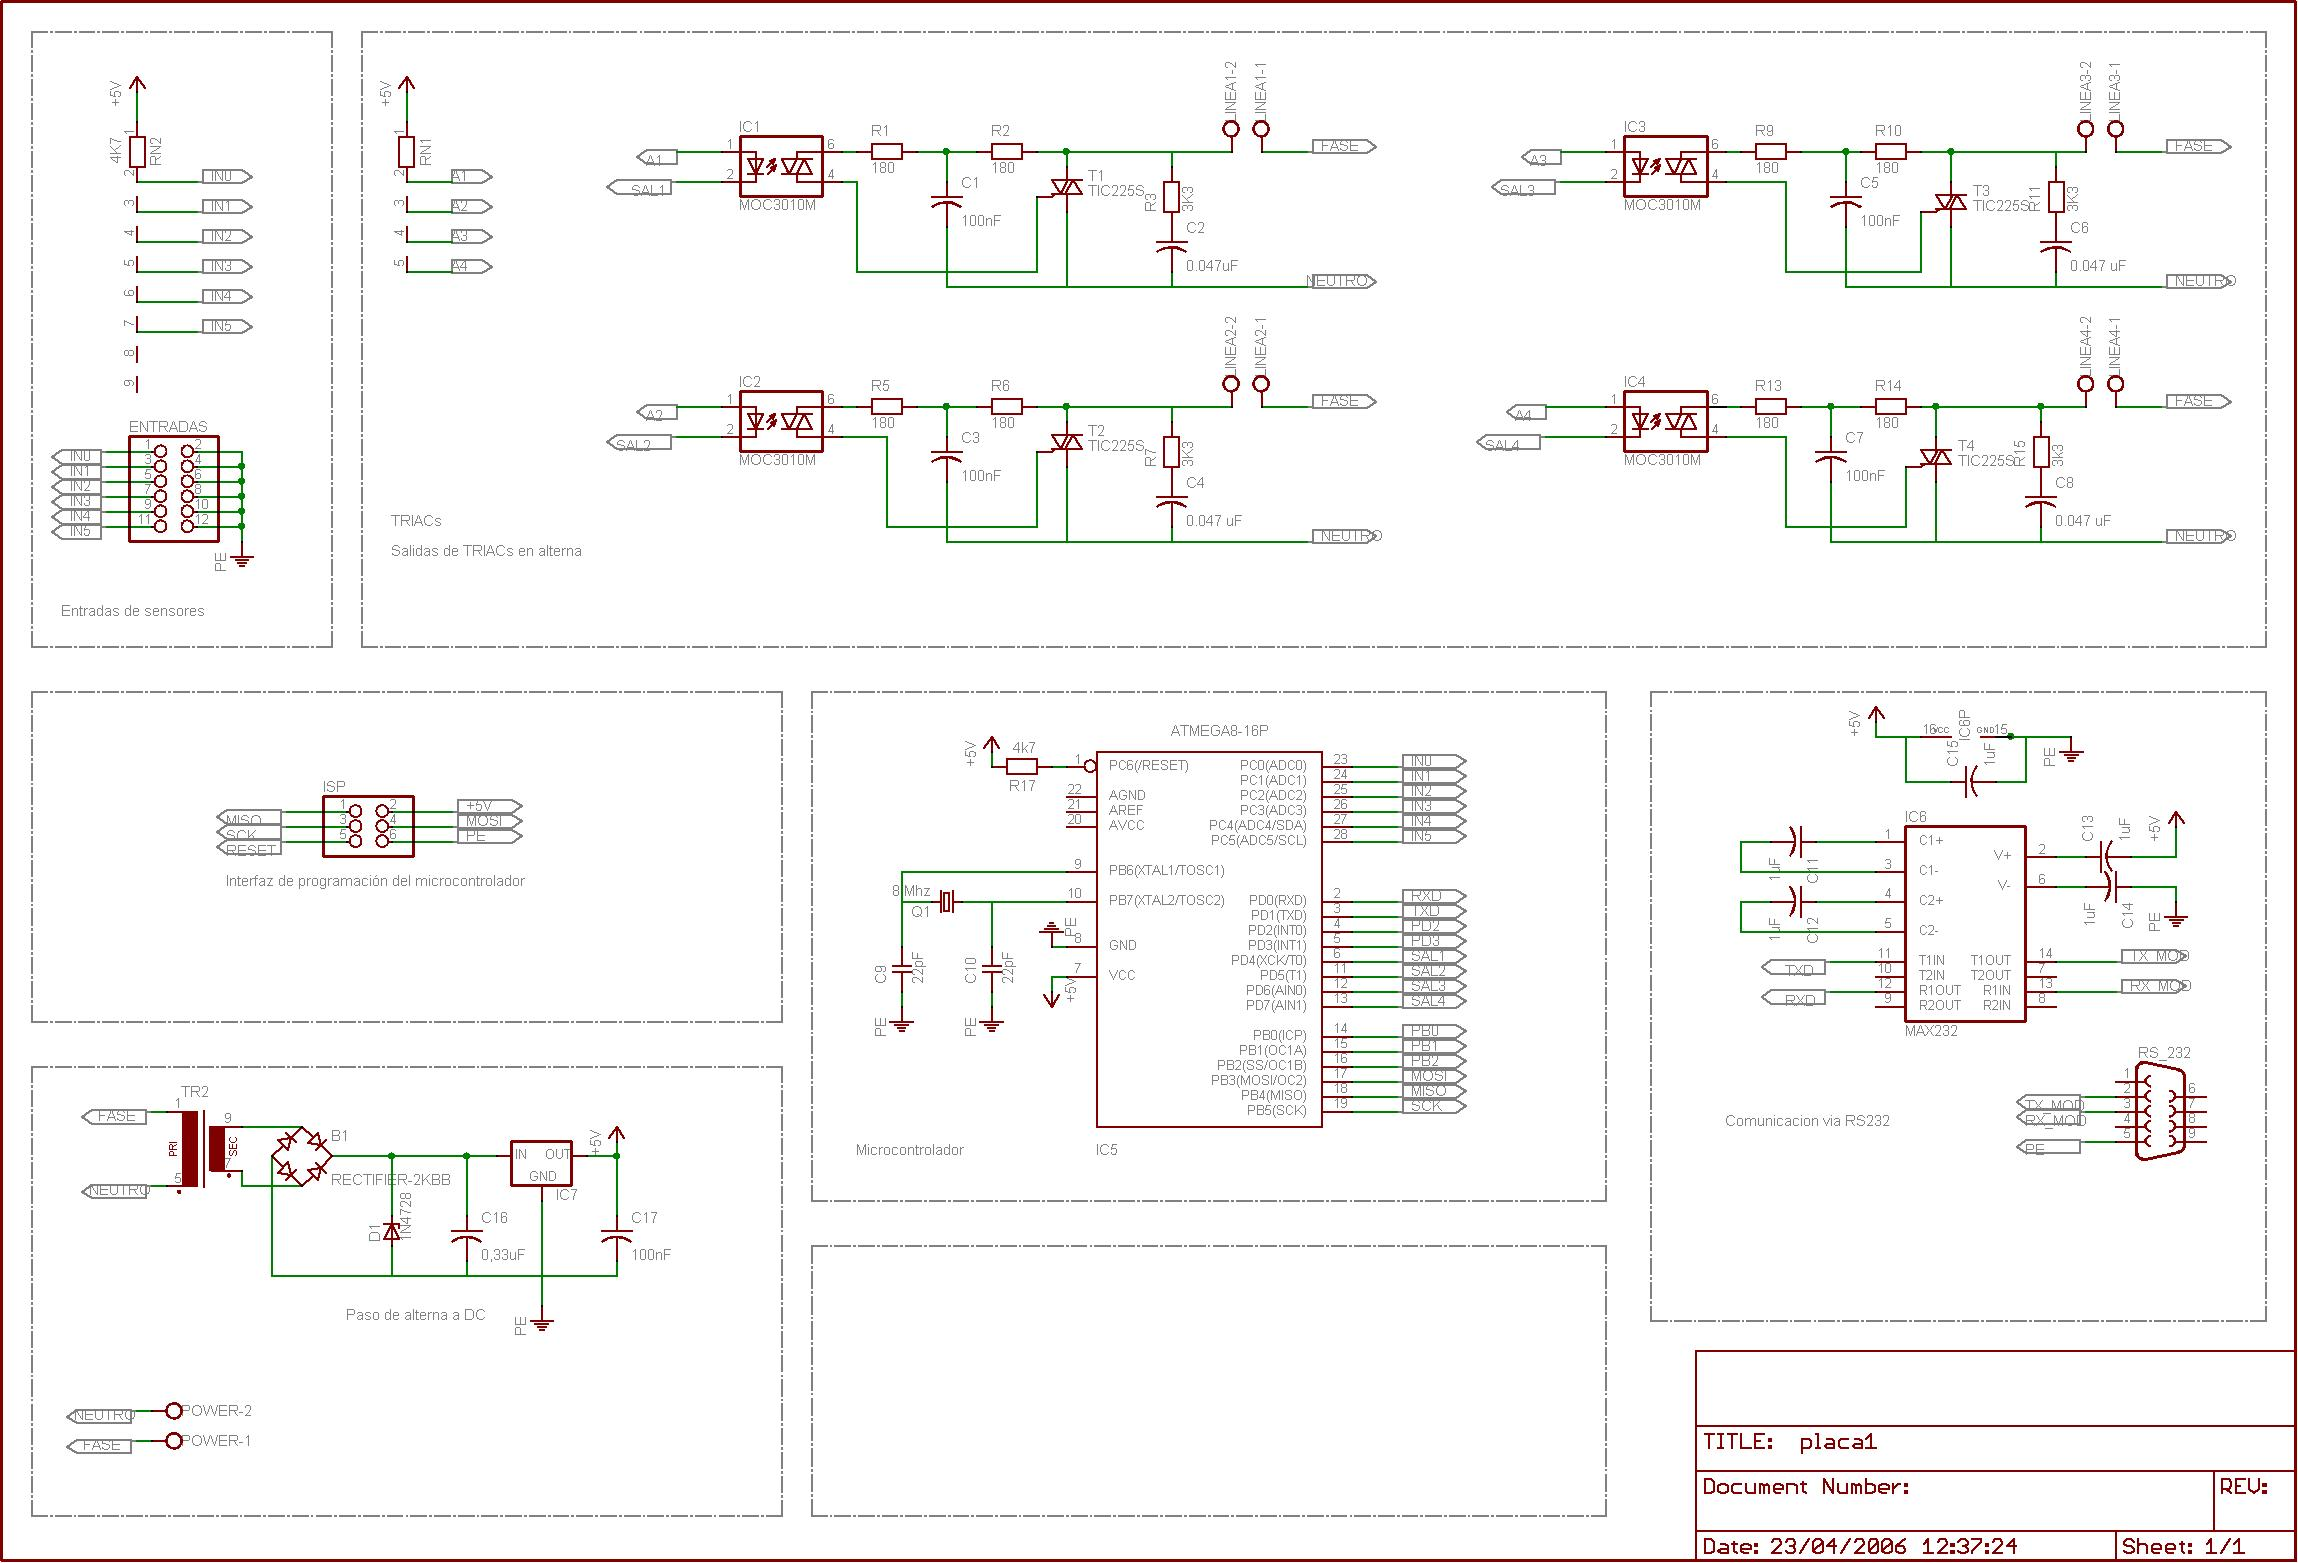 How To Simulate Simple Winavr Code In Proteus Avr Freaks Arduino Led Circuit Simulation Using Atmel Studio And This Is I Used With Isisexe